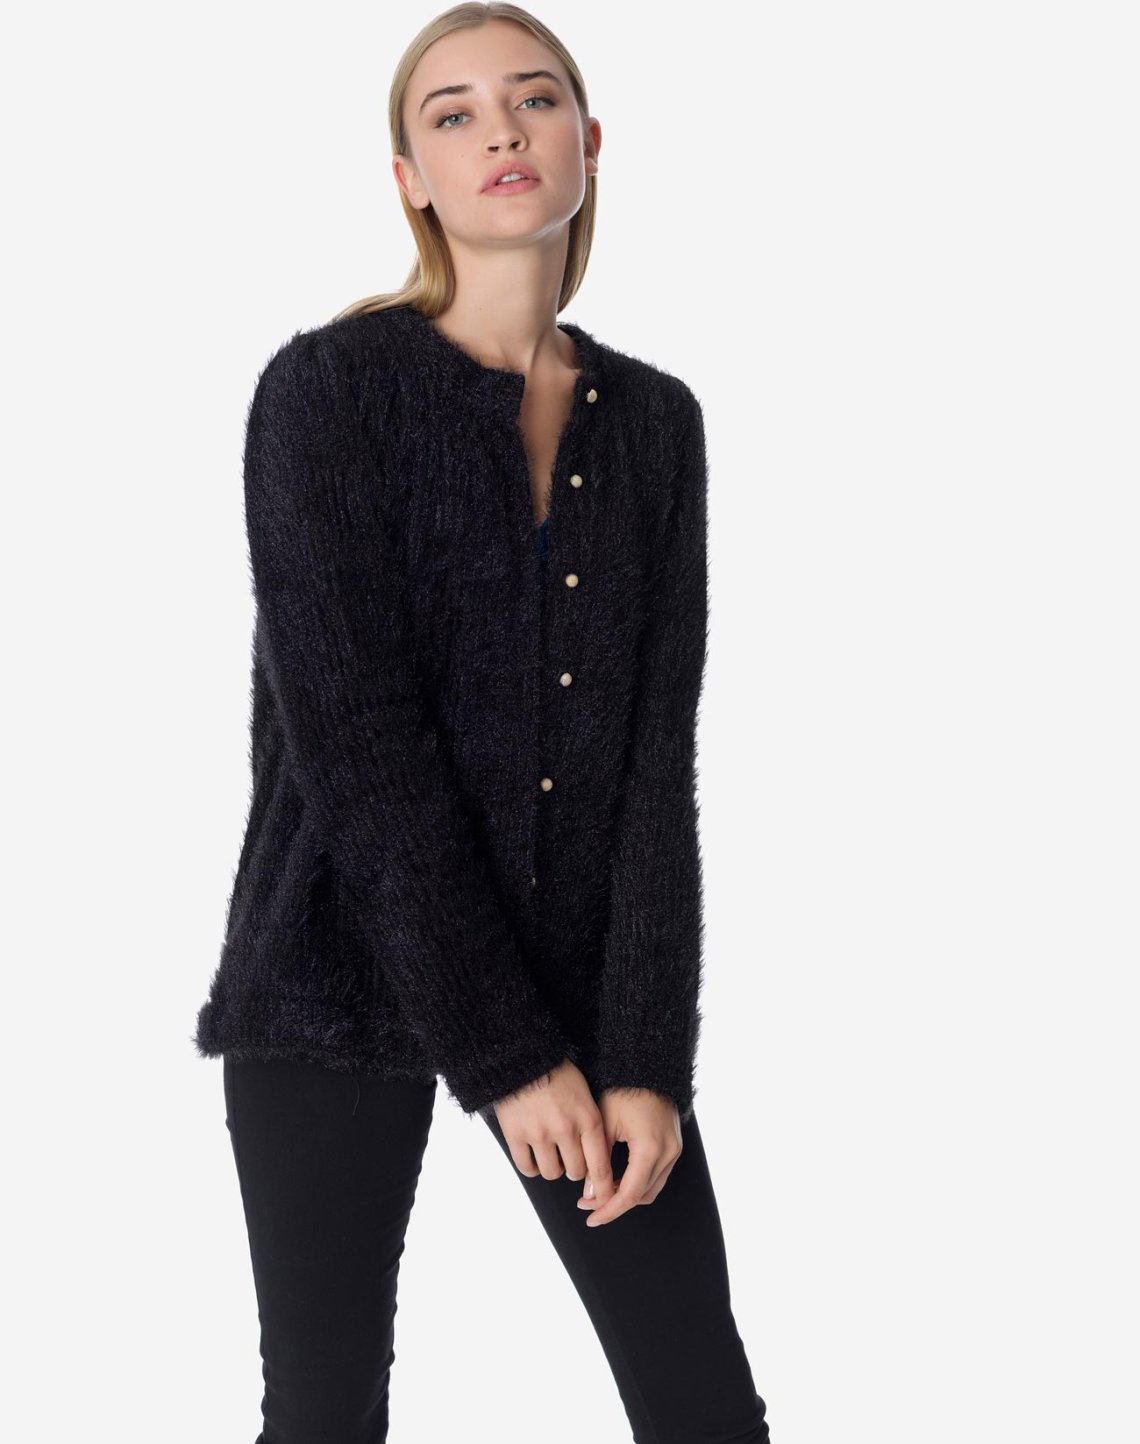 Knit cardigan with golden buttons